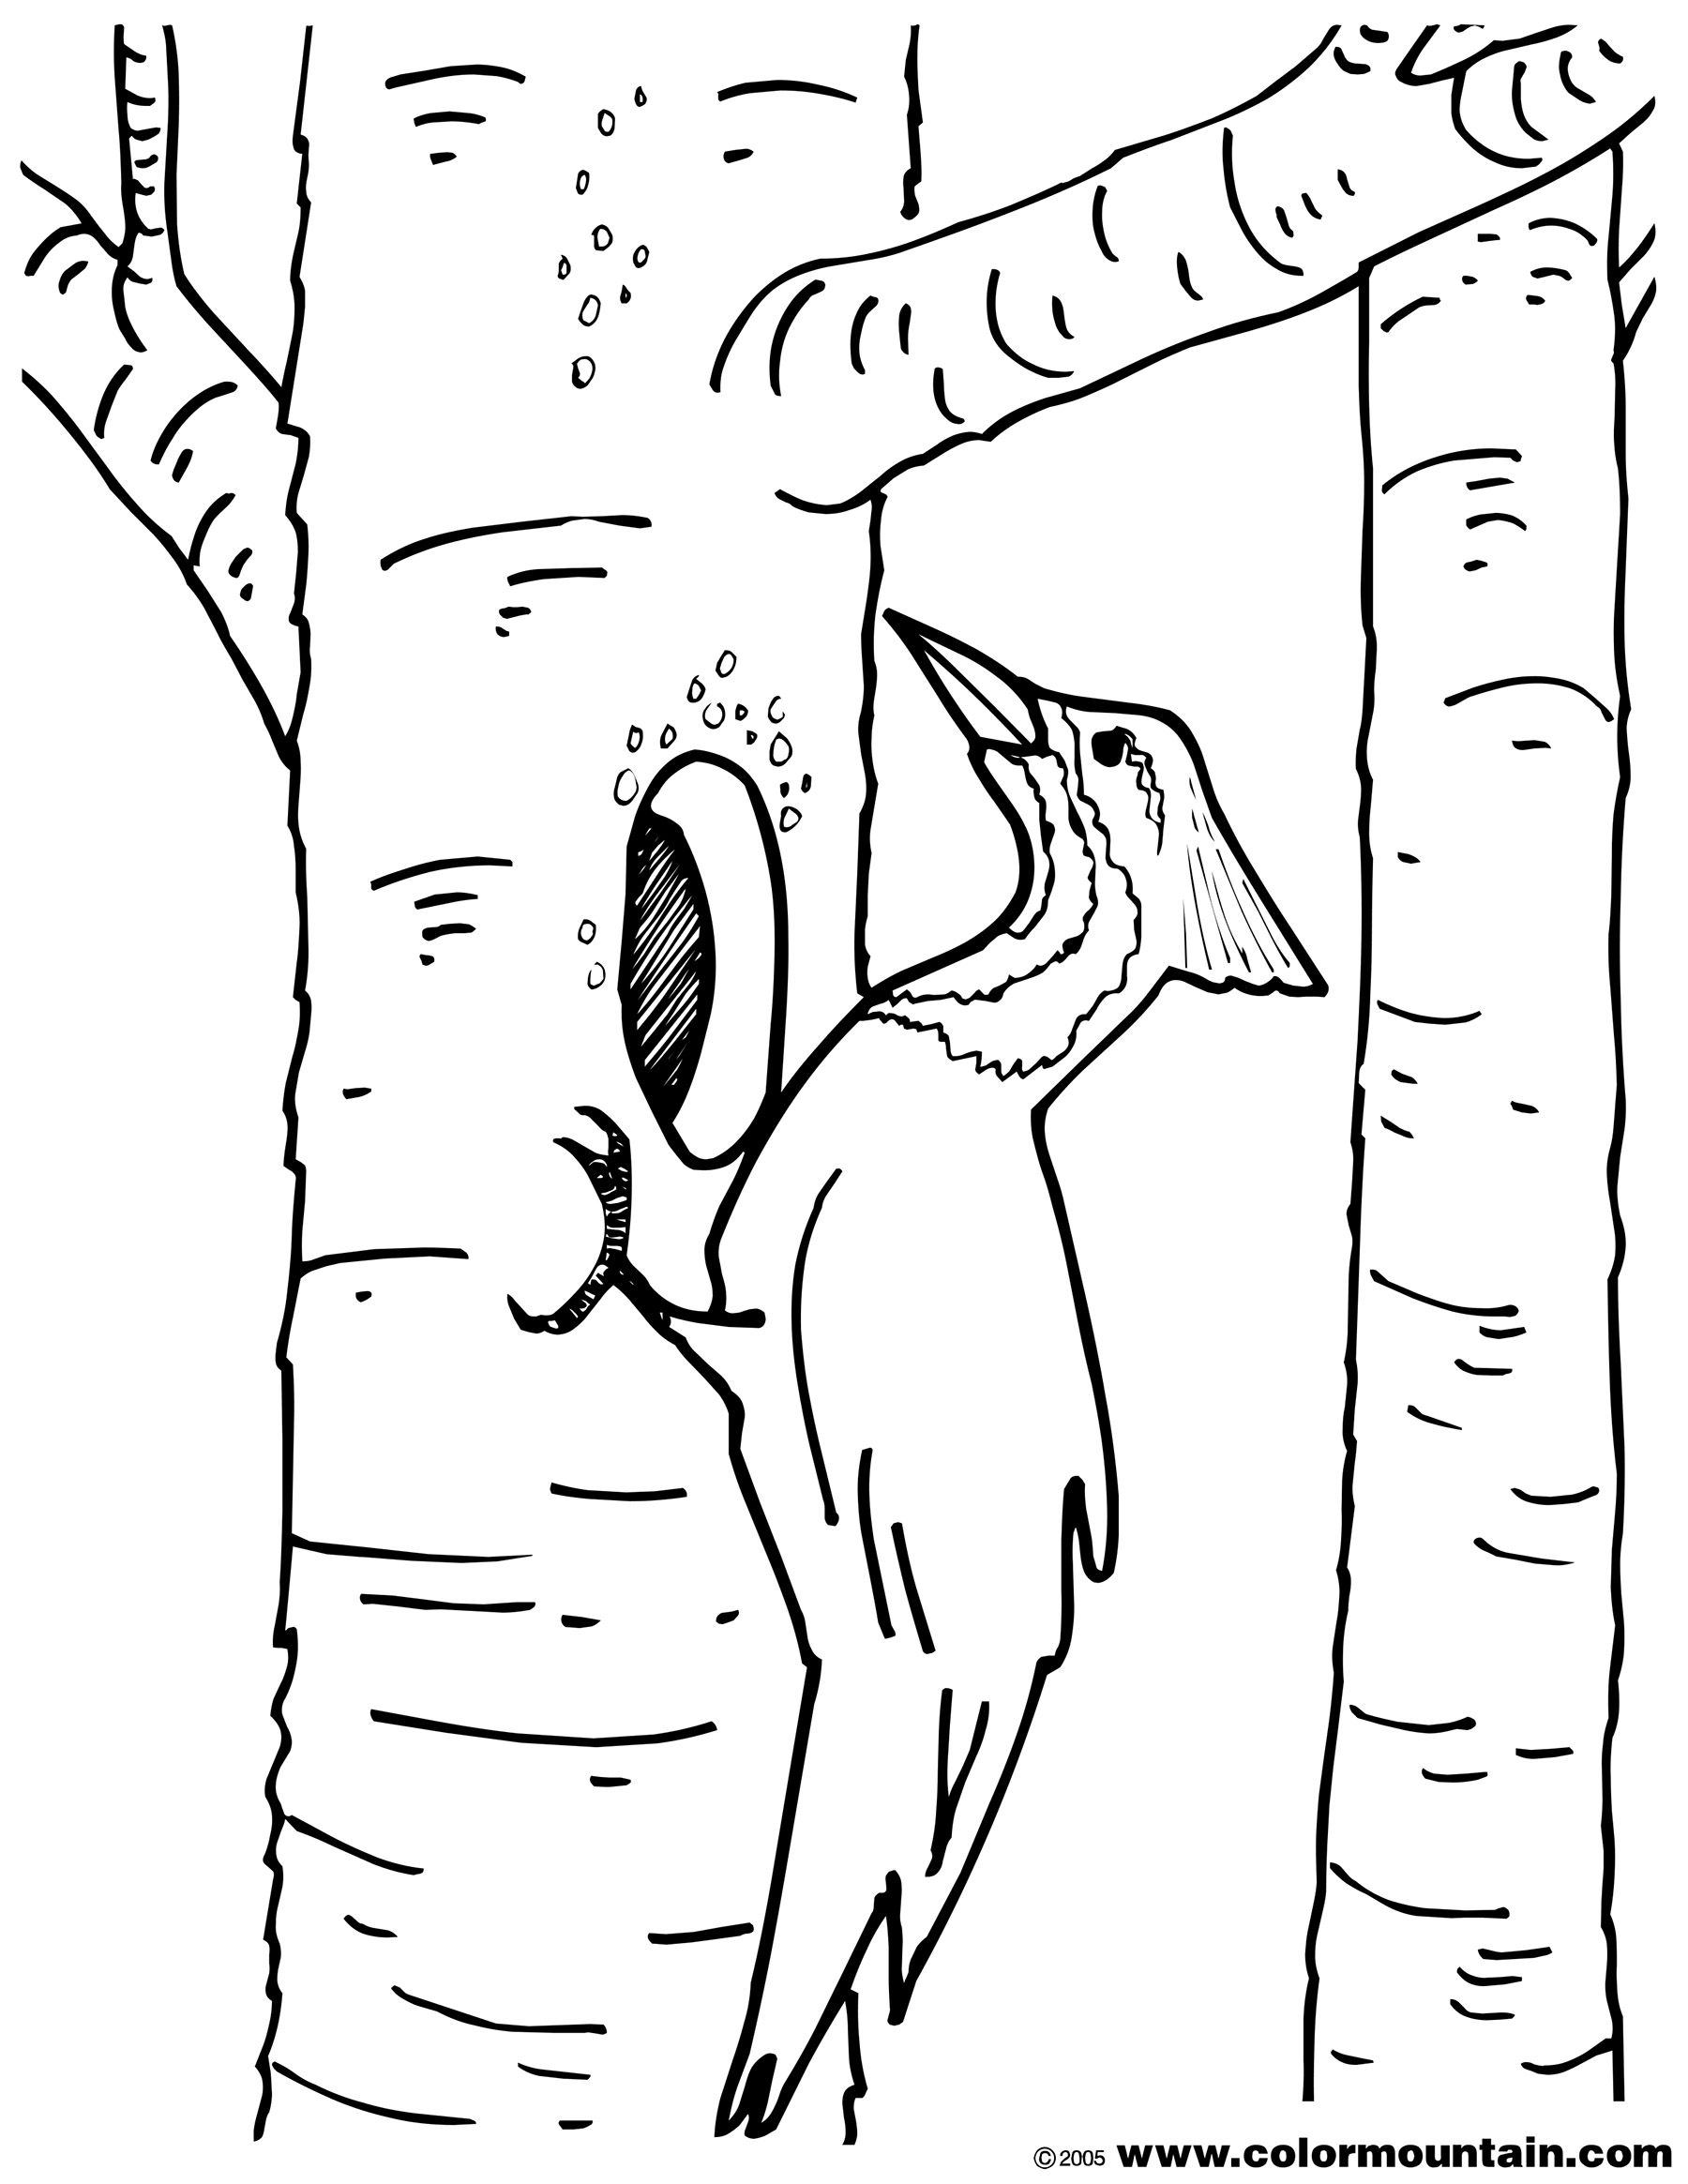 printable woodpecker coloring pages,printable,coloring pages